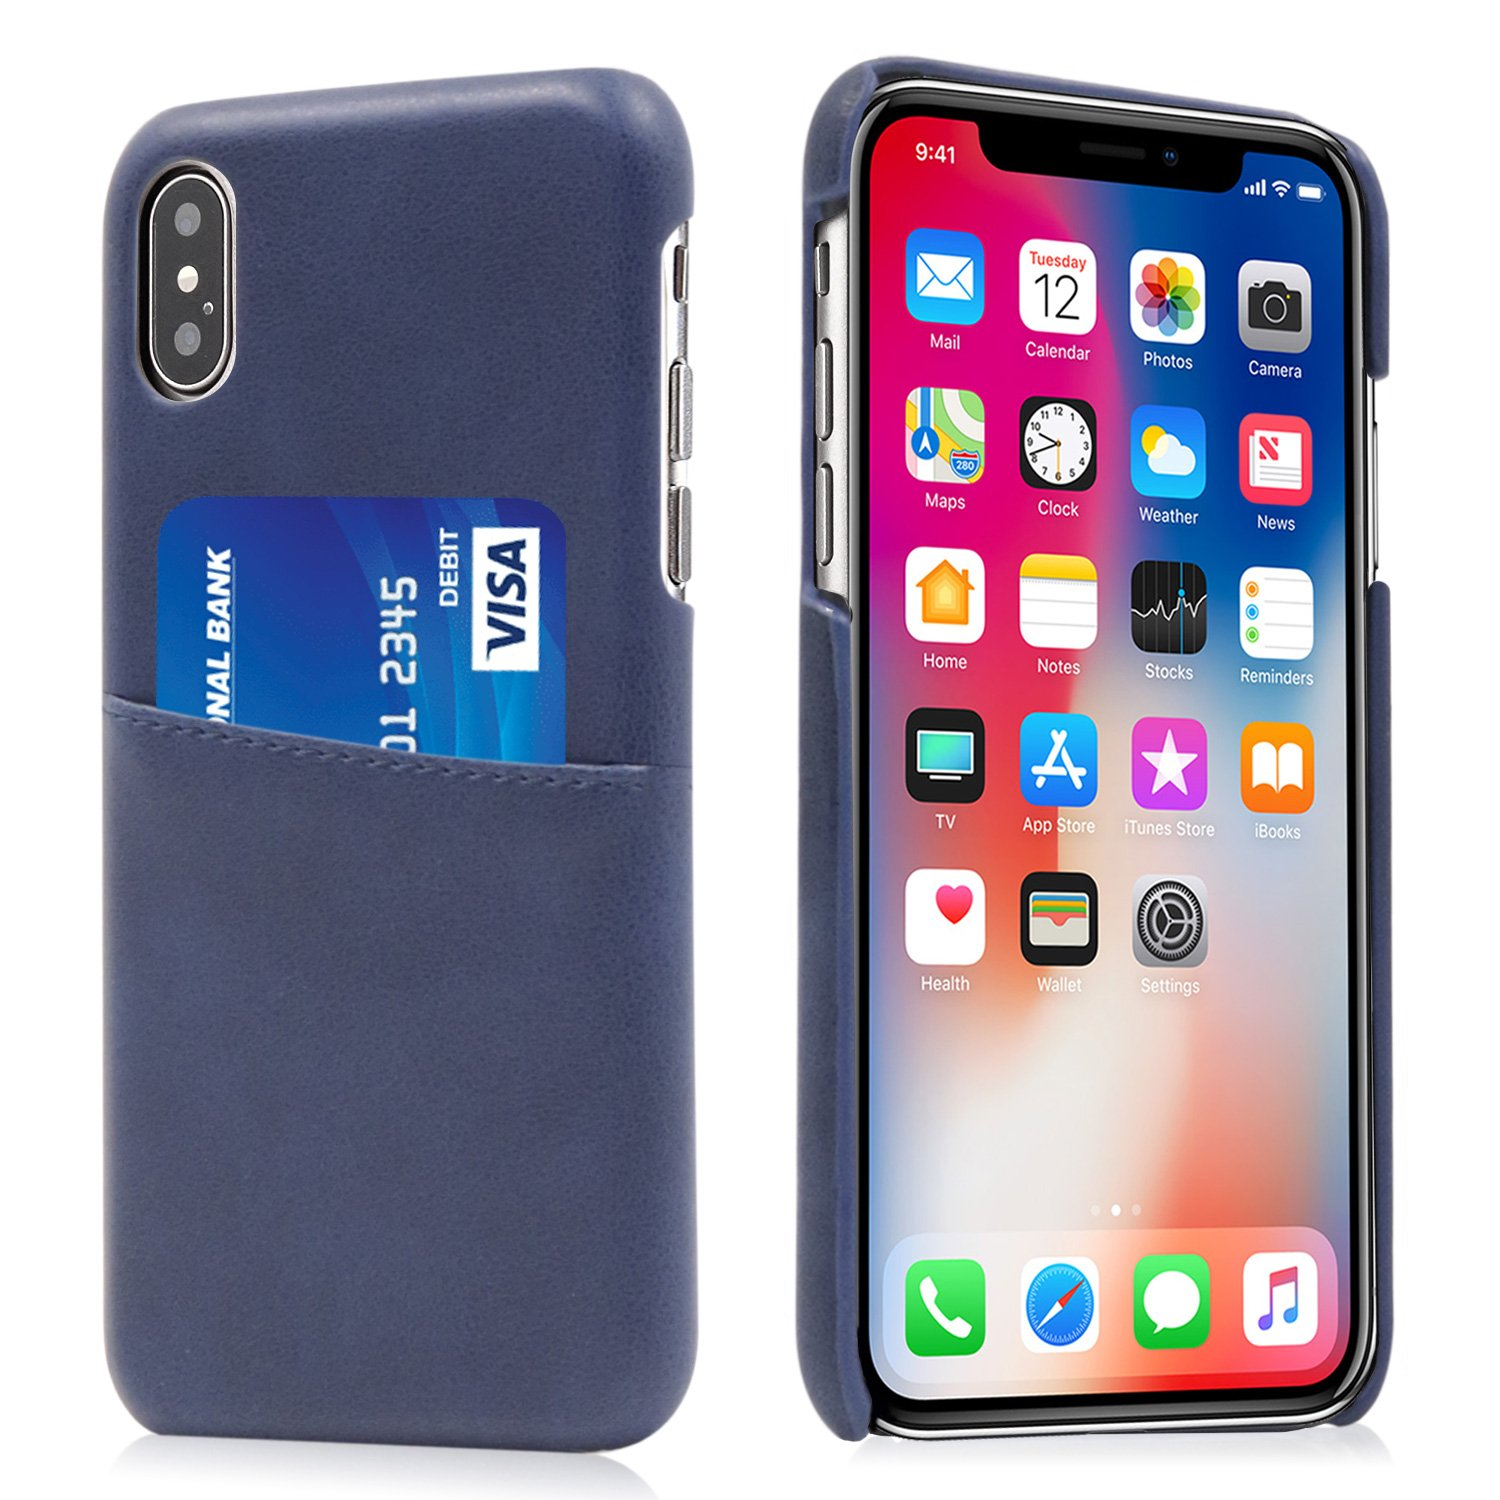 Buruis iPhone X Slim Card Case, Premium PU Leather Shockproof Wallet Case with Credit Card Slot Holder for Apple iPhone X (Blue) by Buruis (Image #1)